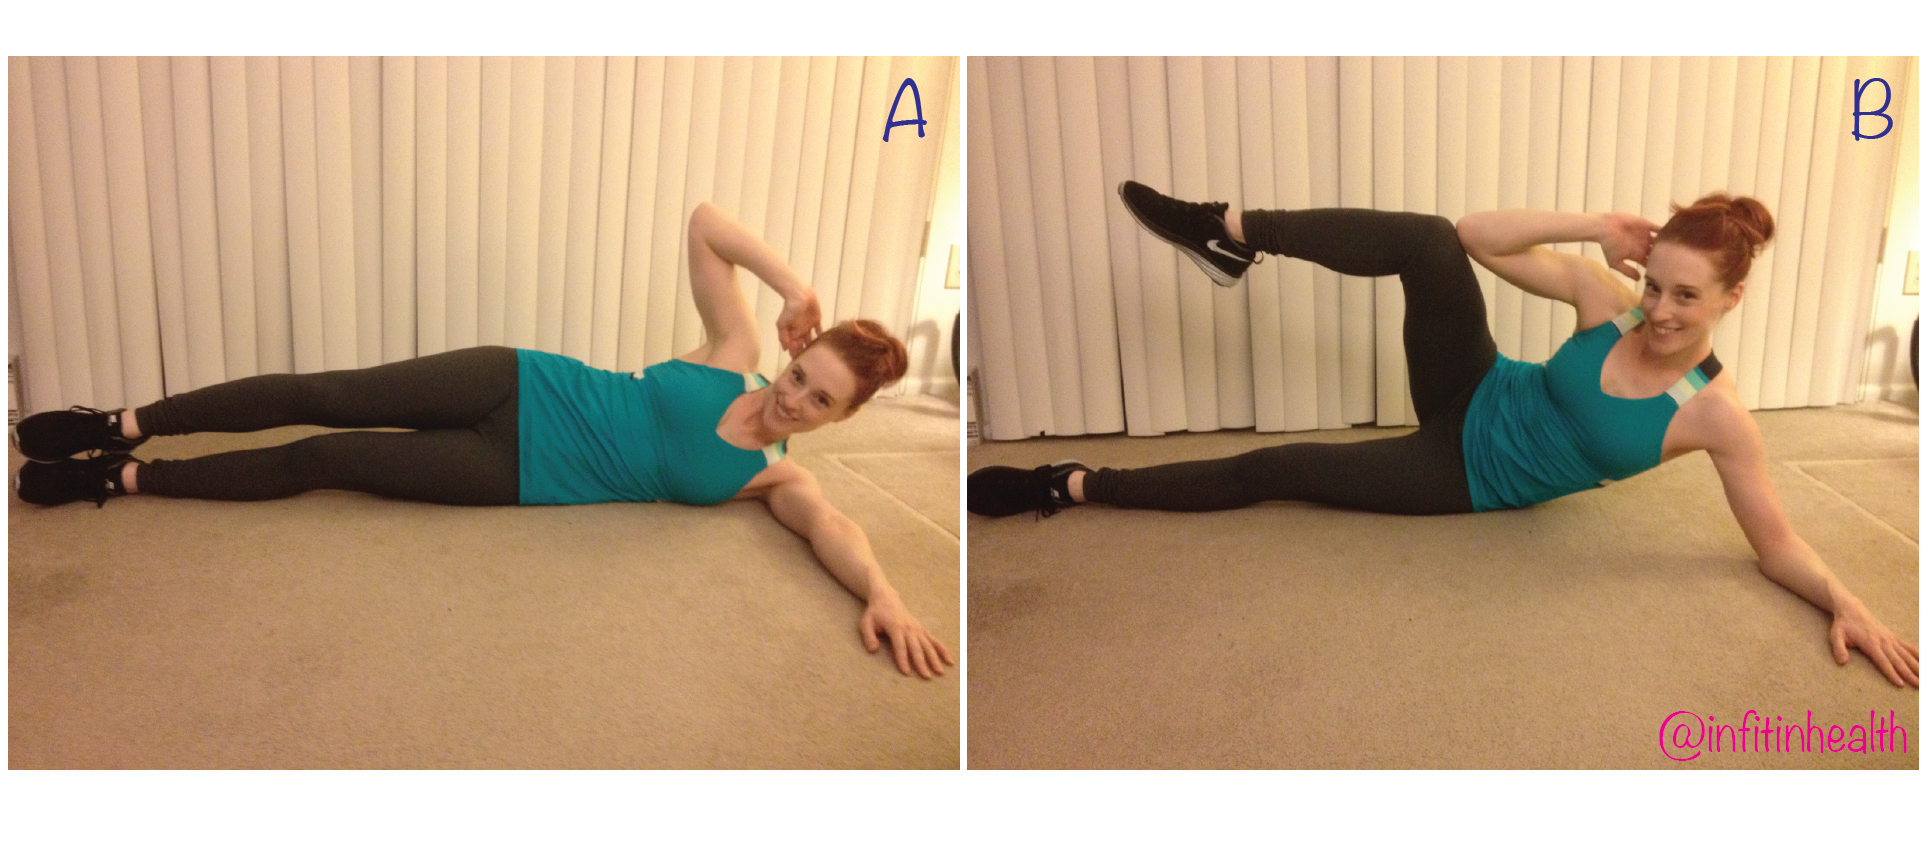 Option 1: lowintensity- bring your top elbow to your top knee, keeping one leg on the ground.